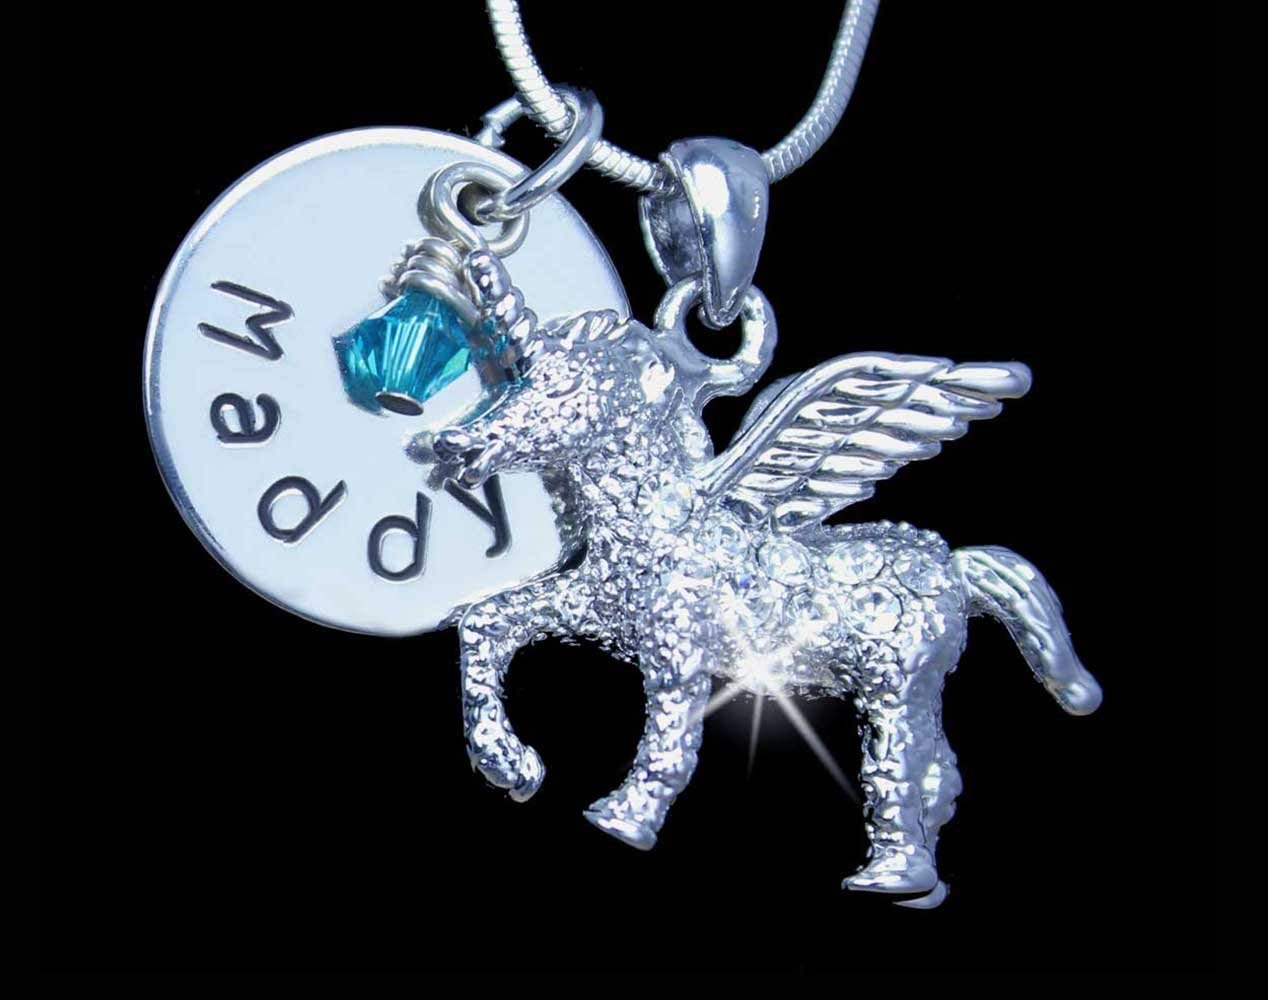 Personalized Crystal Unicorn Charm Necklace | Unicorn Charm Jewelry | Silver Unicorn Charm Necklace | Personalized Charm Jewelry | Personalized Unicorn Charm Pendant